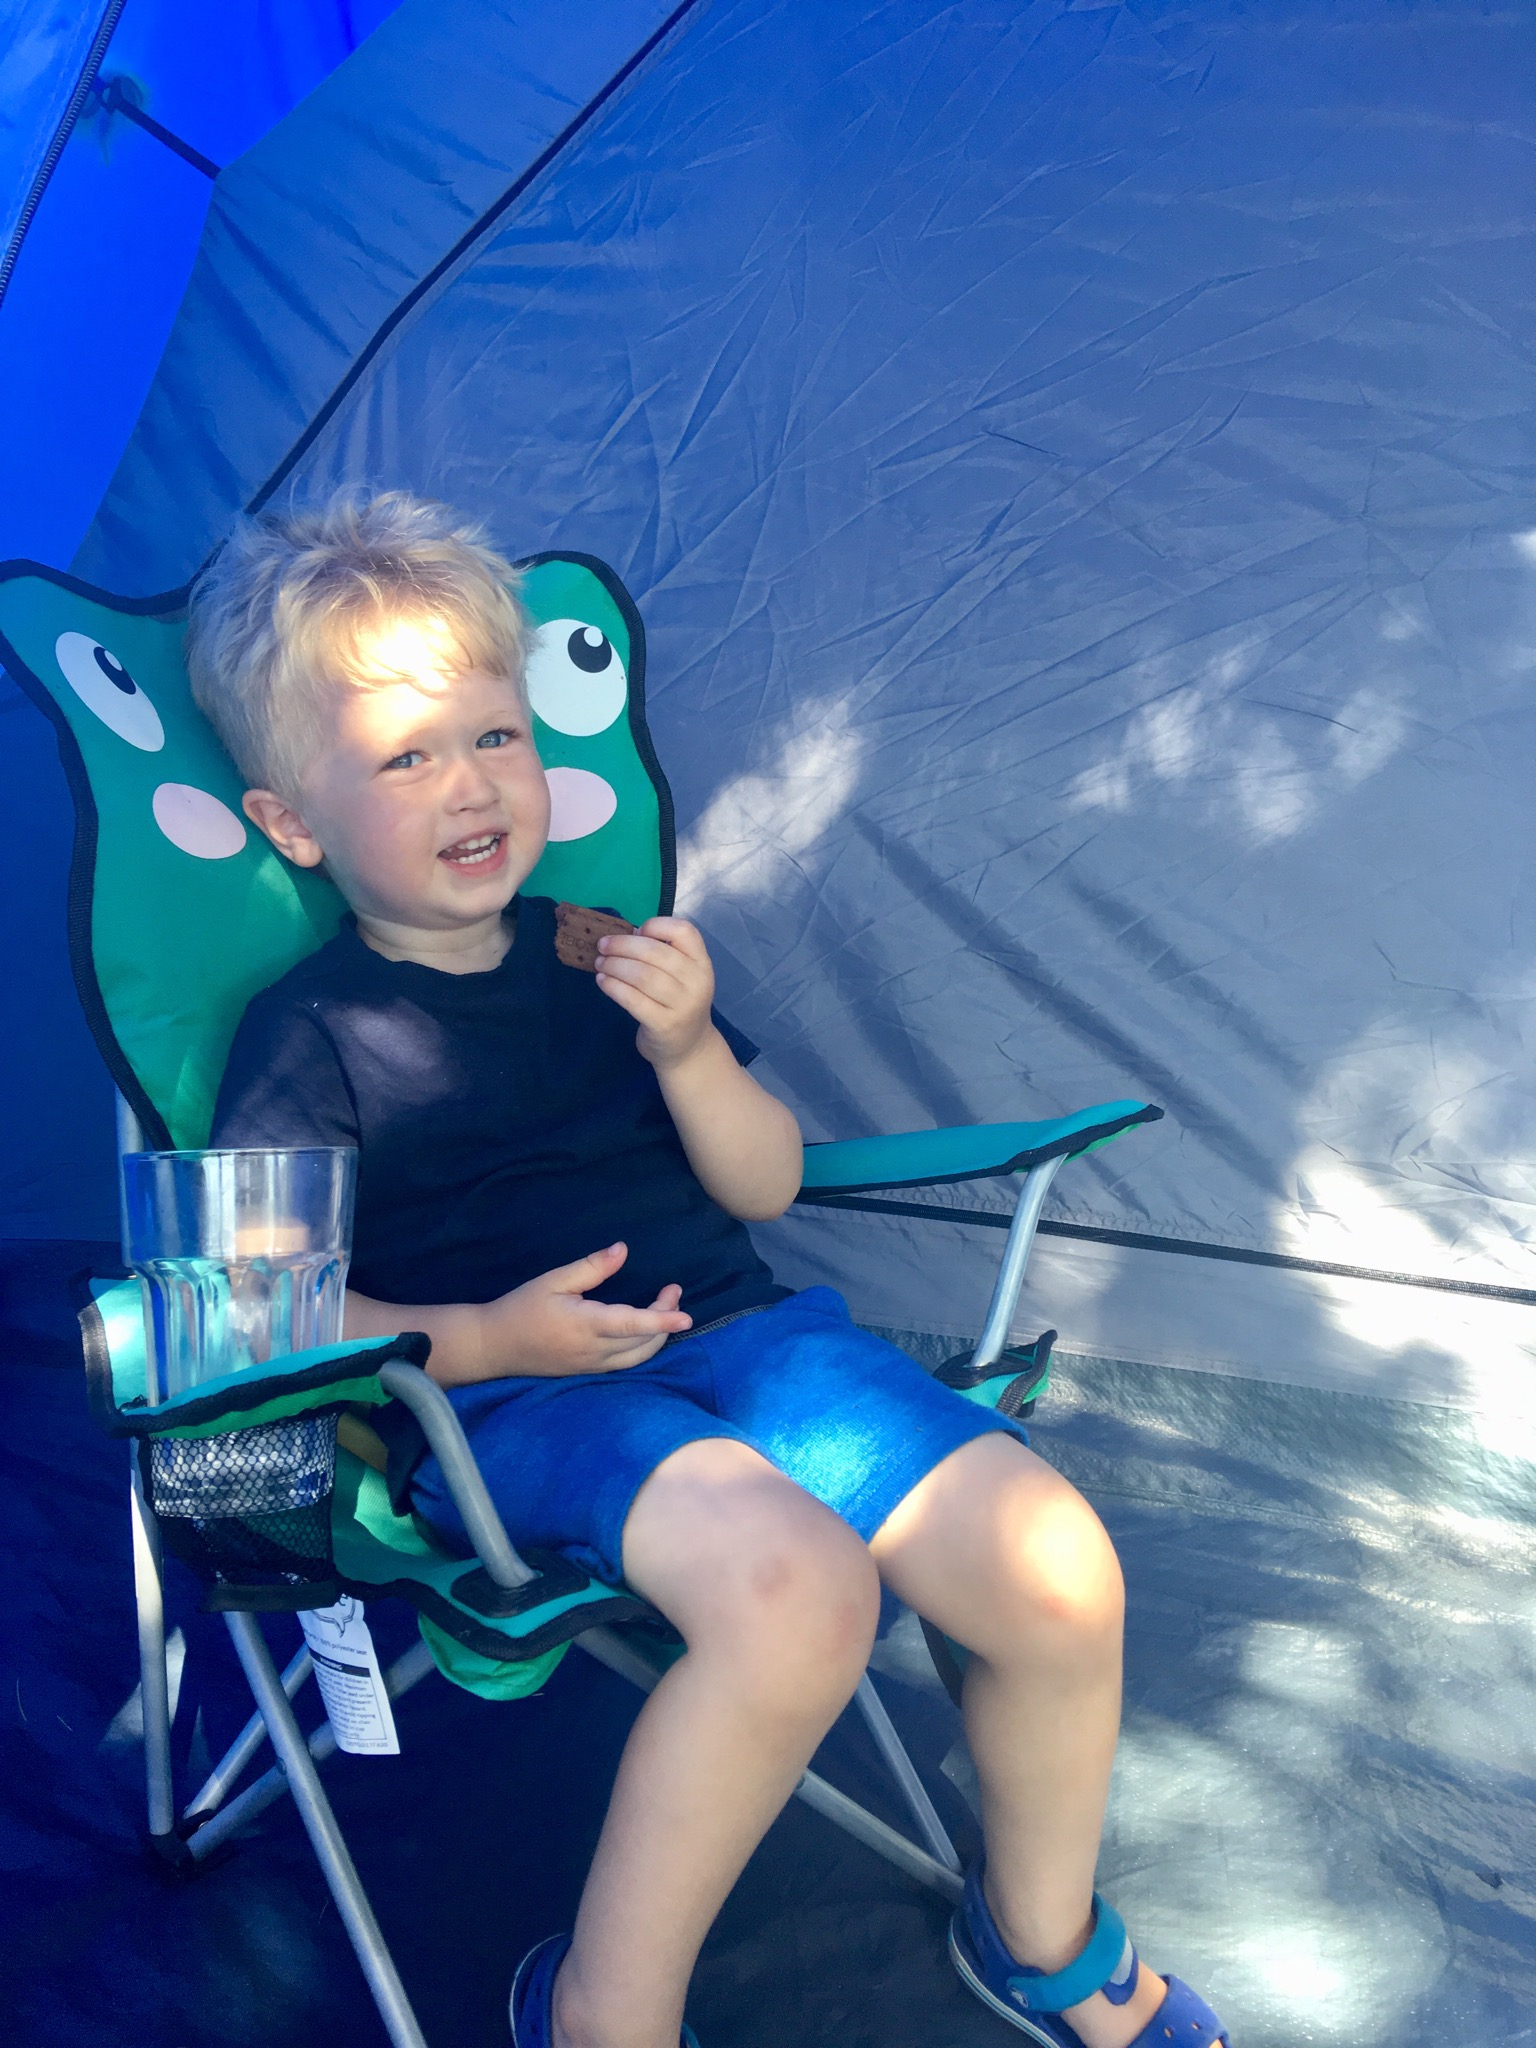 Wild Night Out 2018 Lucas is sat in a children's camping chair smiling at the camera